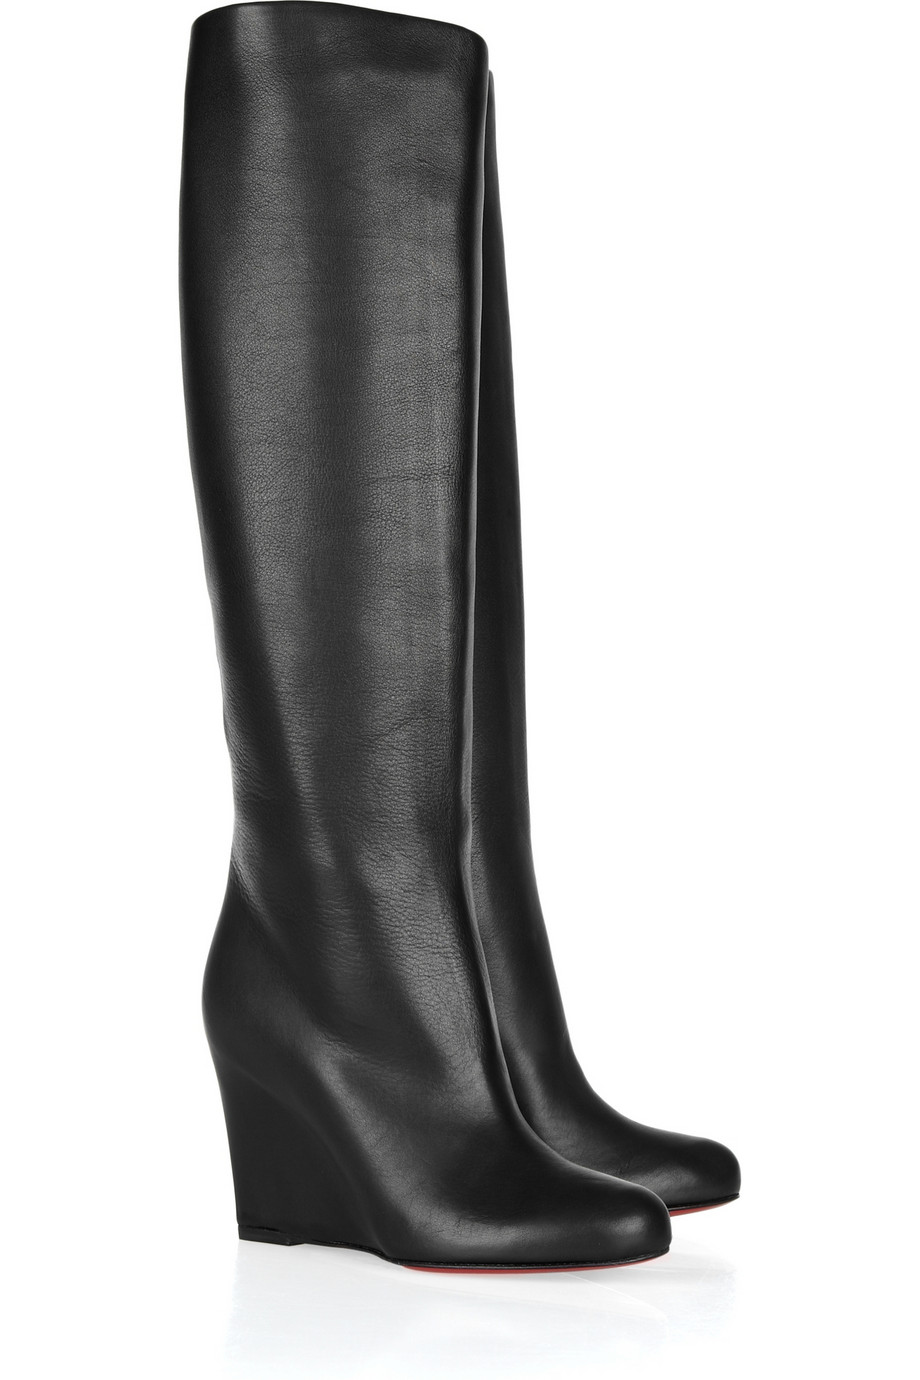 christian louboutin zepita 85 leather wedge boots in black